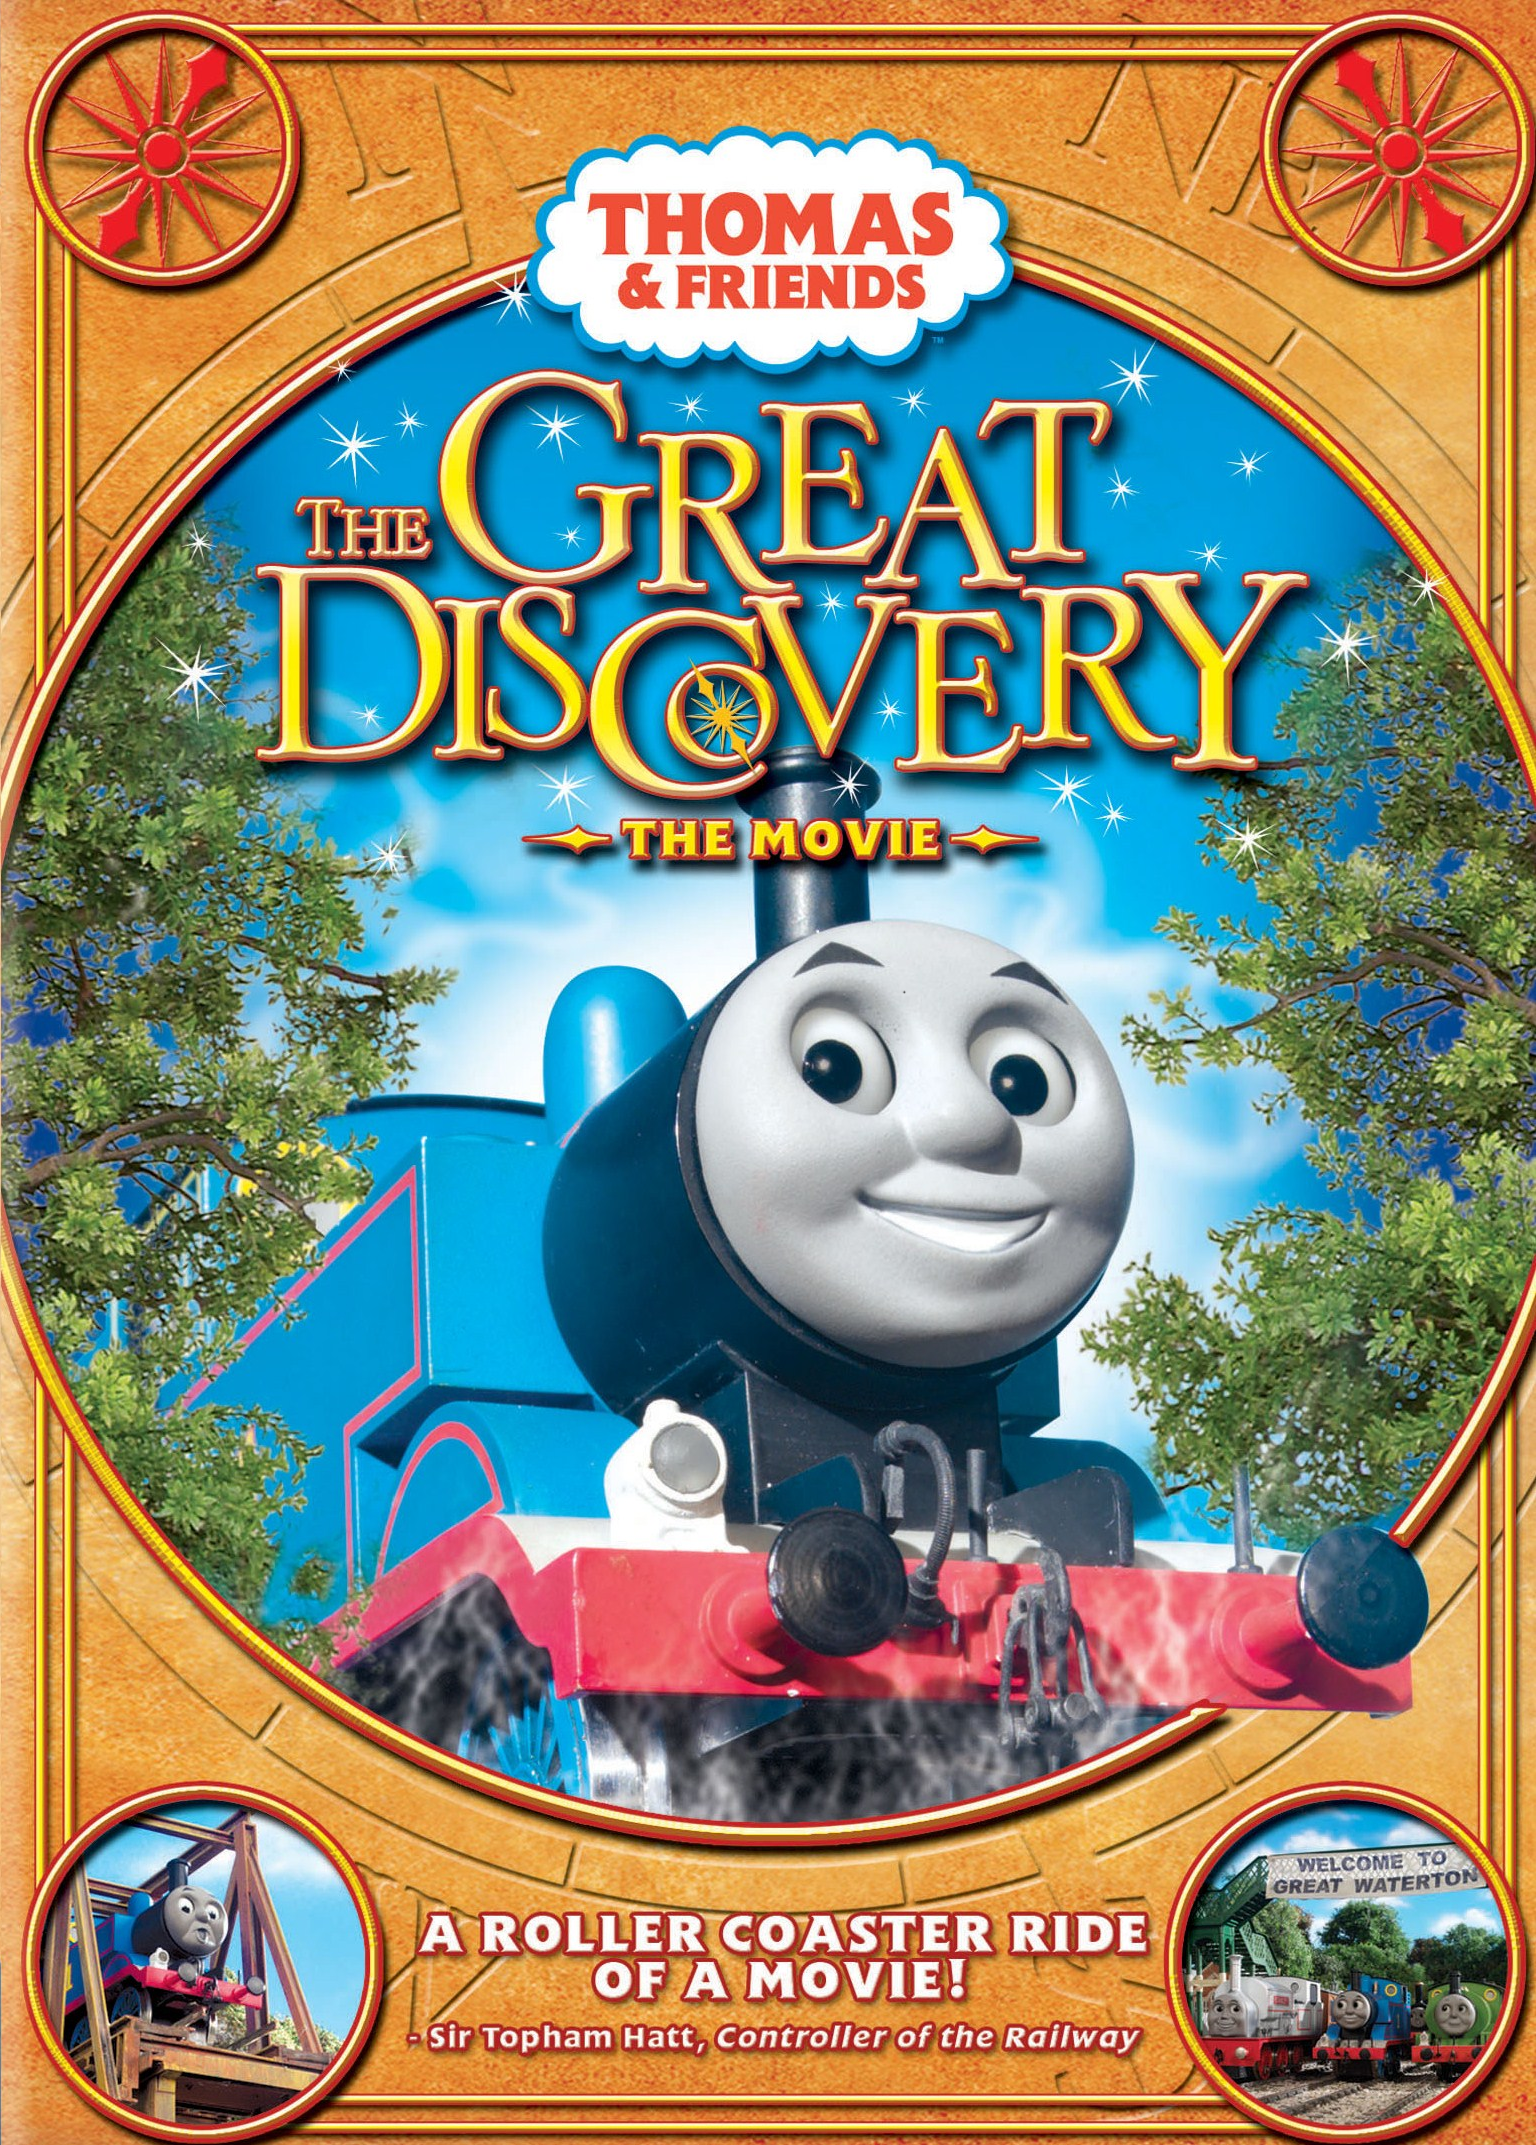 Thomas & Friends: The Great Discovery (2008)